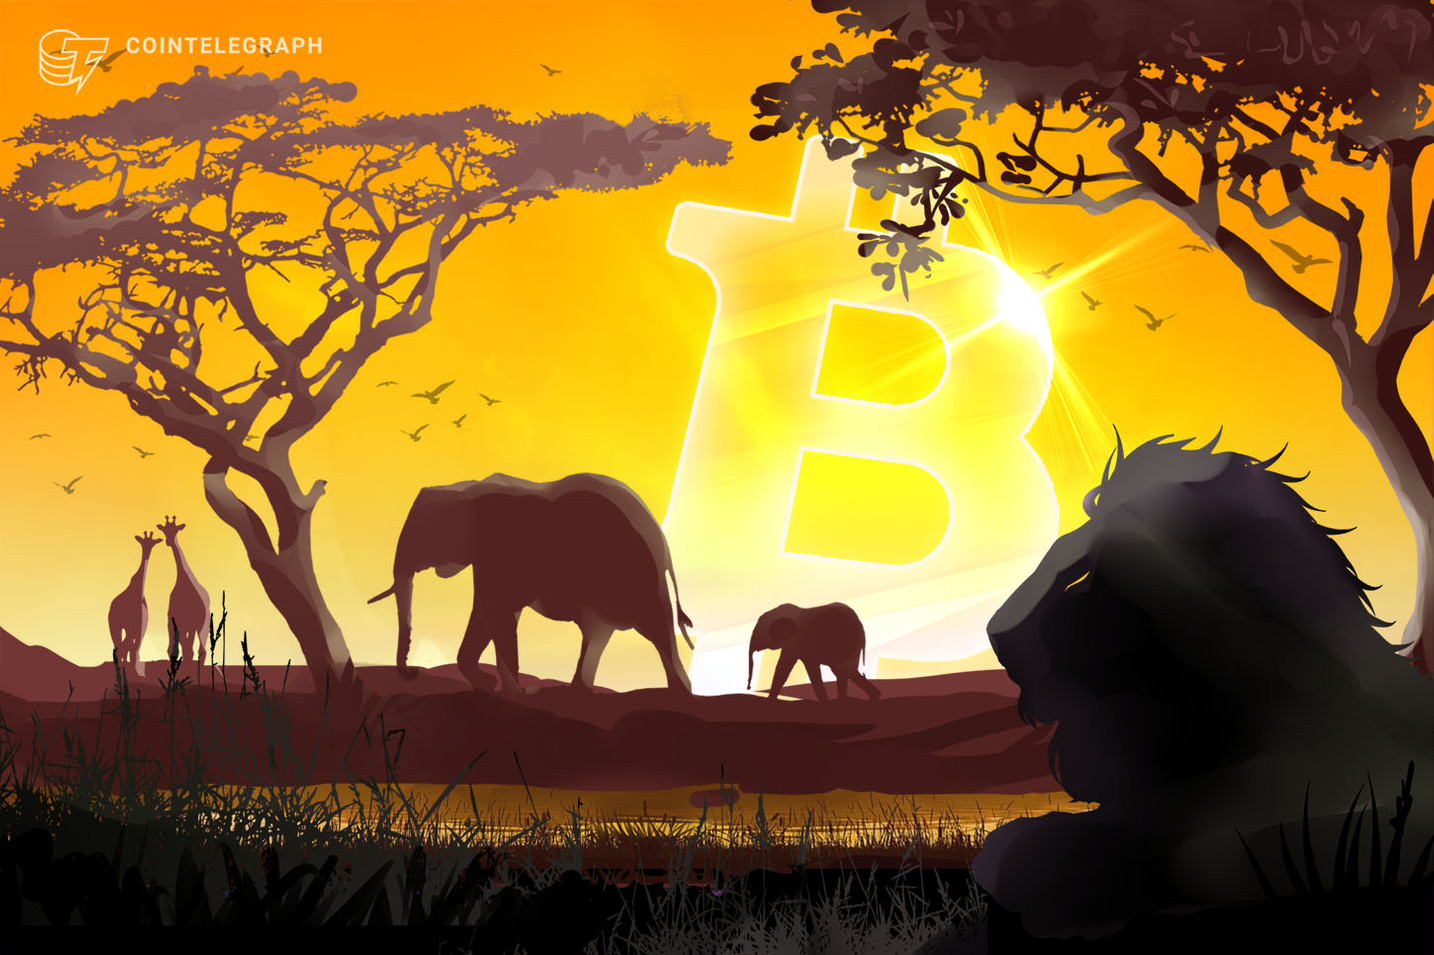 Documentary Review - Banking on Africa: The Bitcoin Revolution